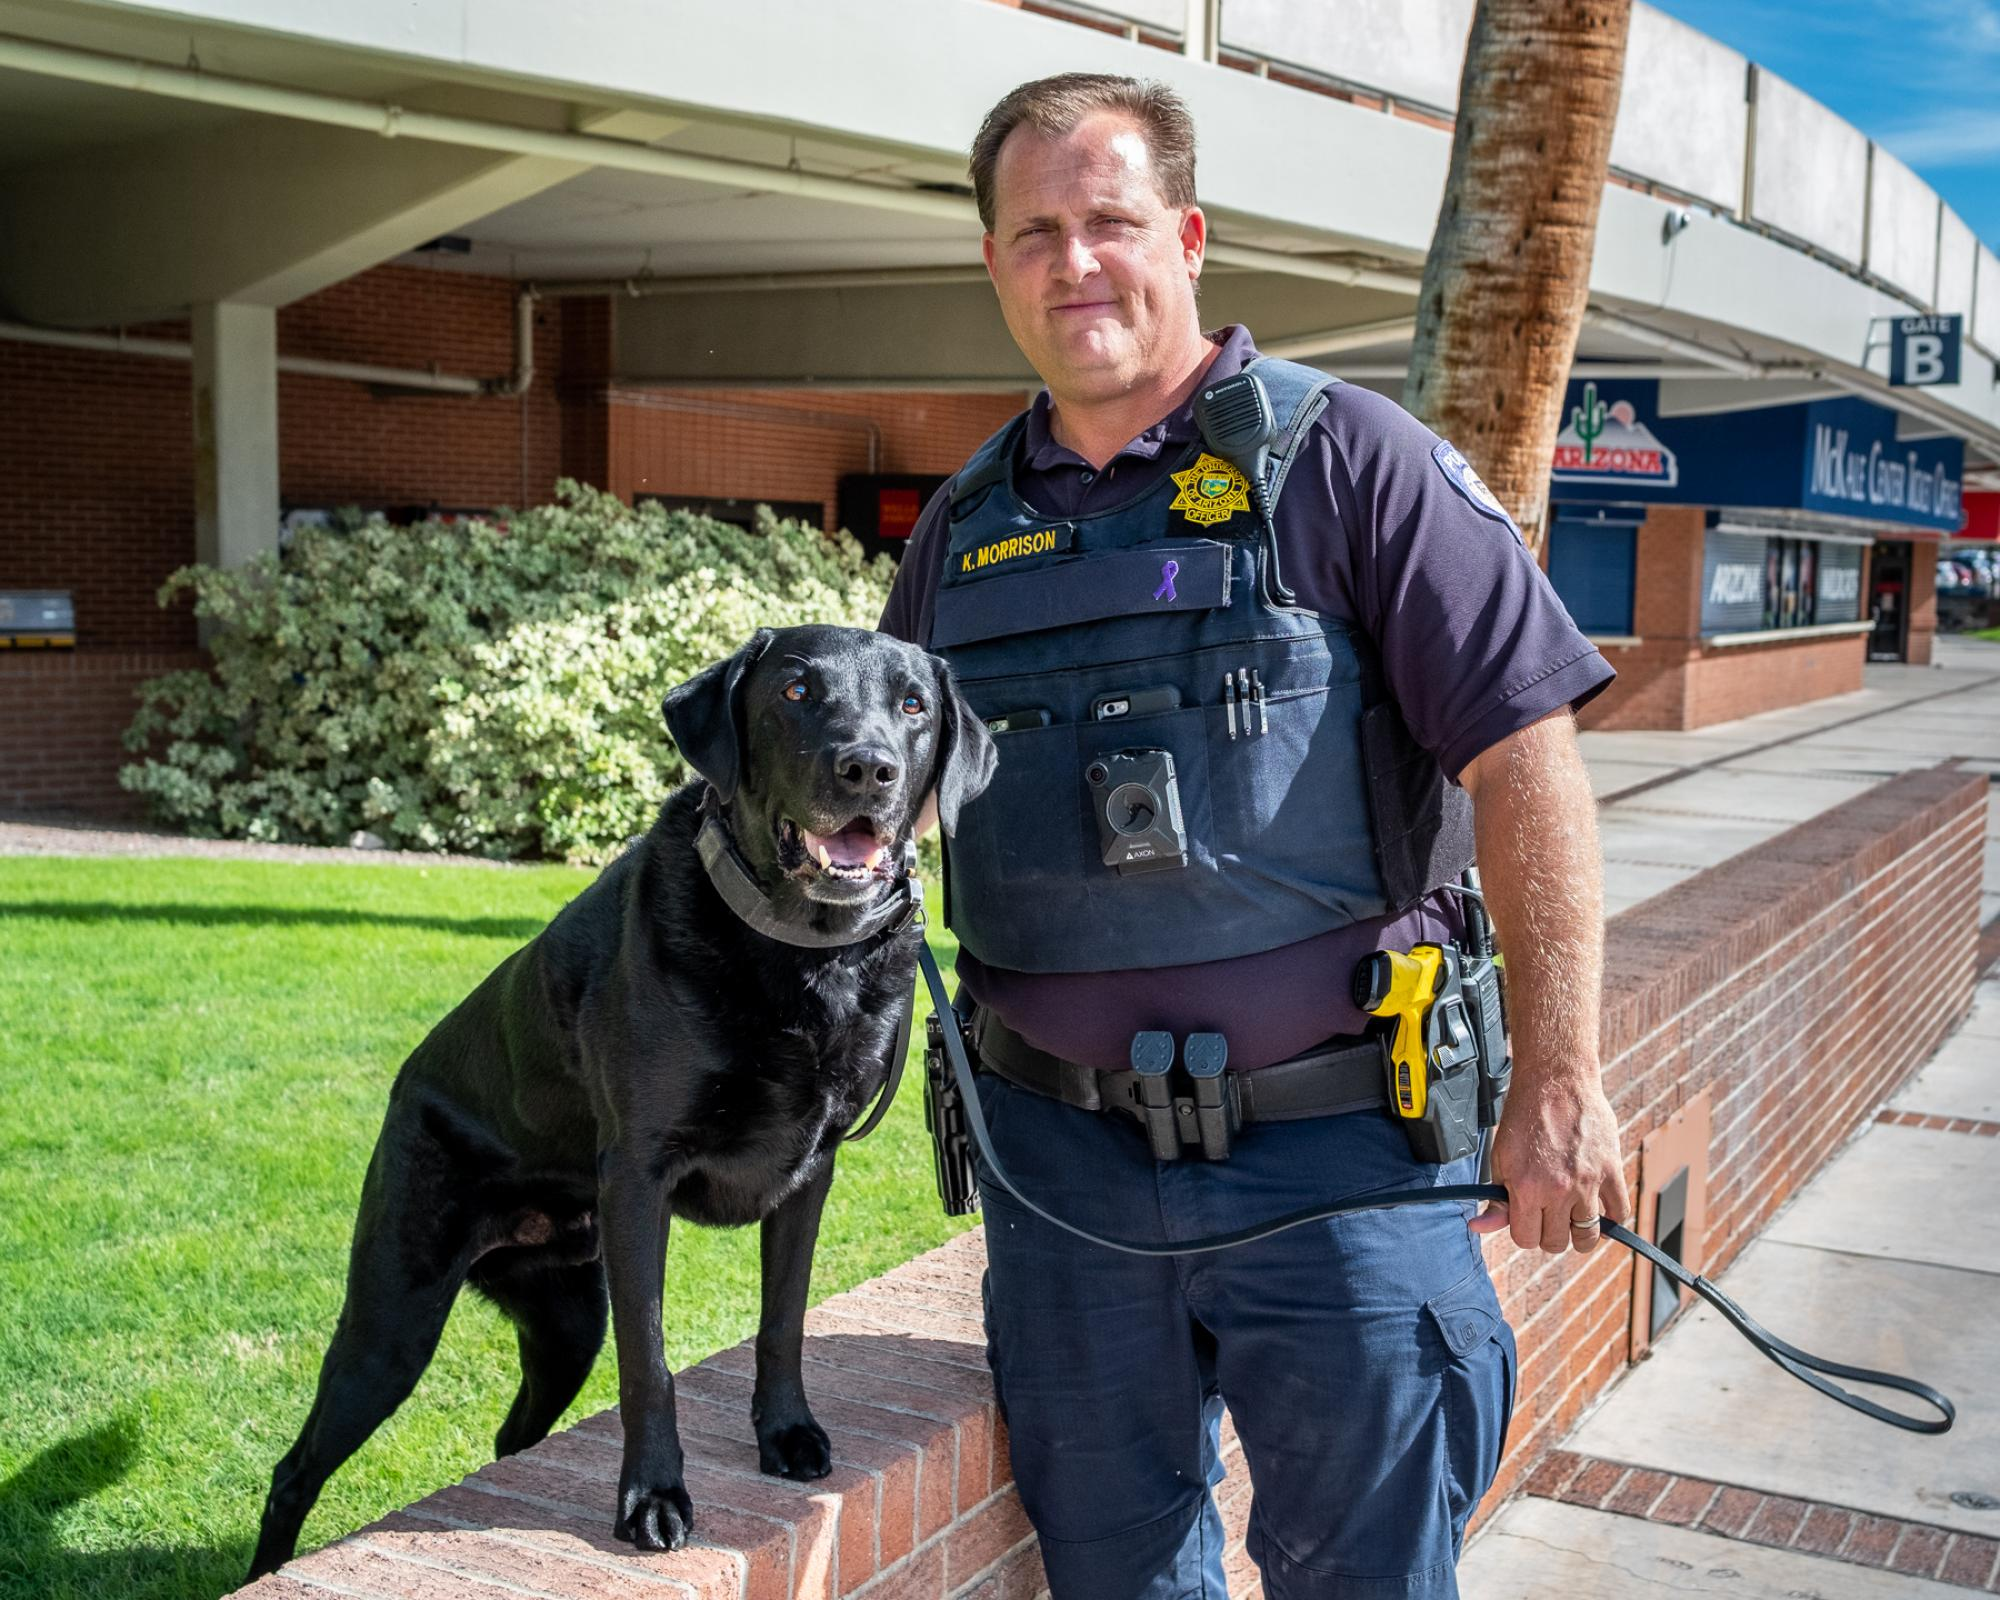 Kyle Morrison and his partner, Toby, are an explosive detection team with the UA Police Department. The cognitive abilities that predict success in detection dogs are different from those that seem important in assistance dogs.